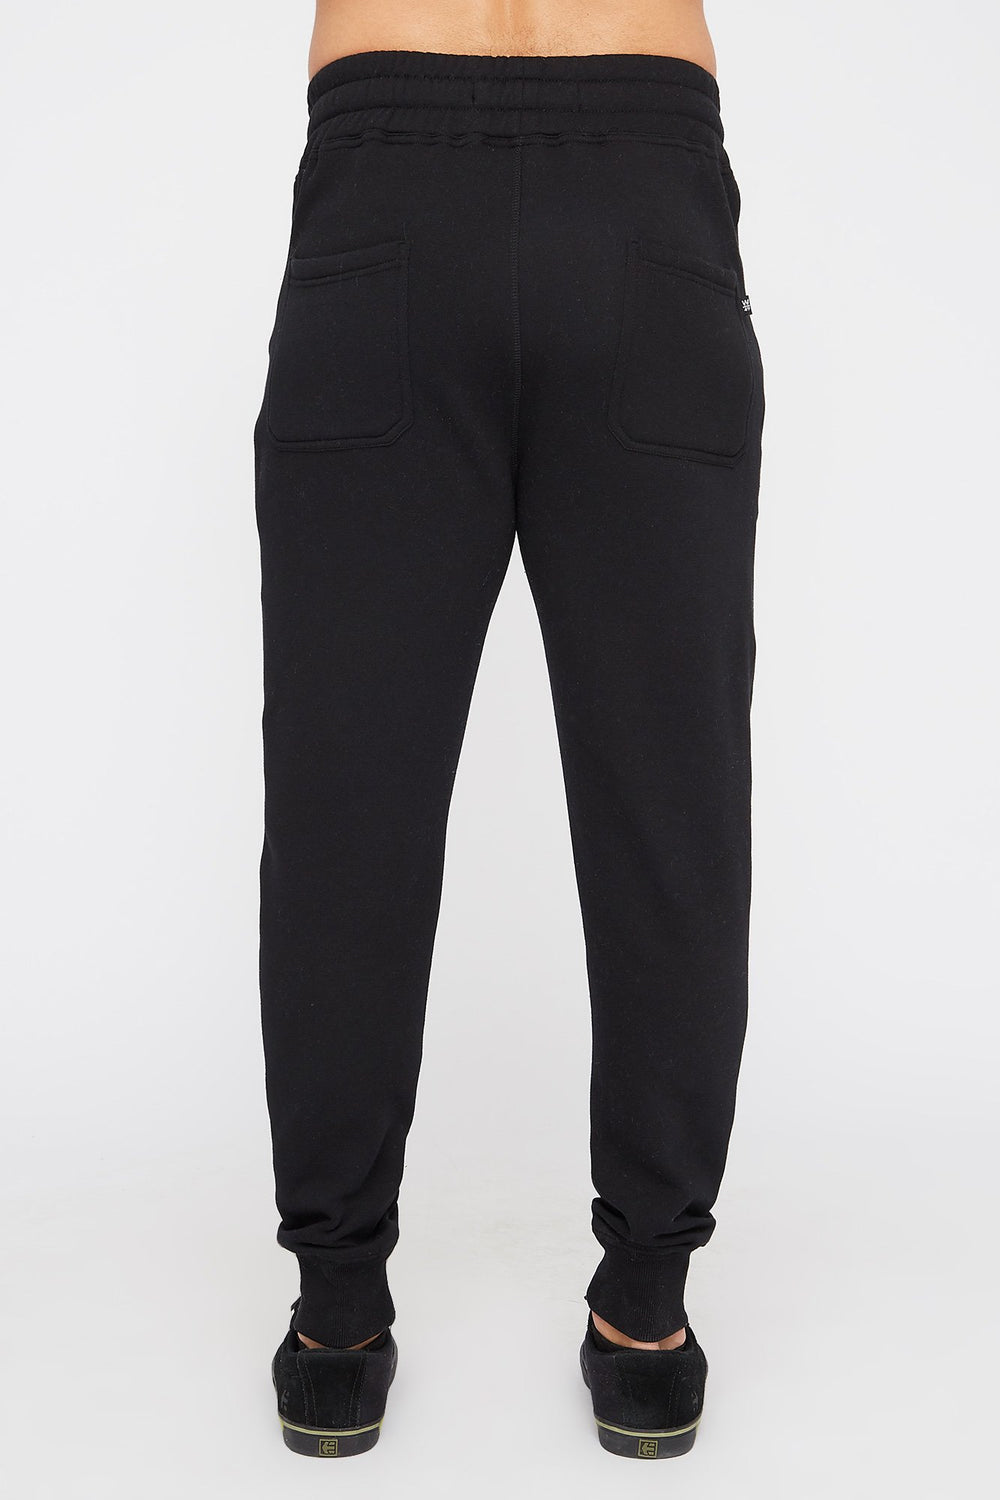 West49 Mens Solid Zip-Up Jogger Black